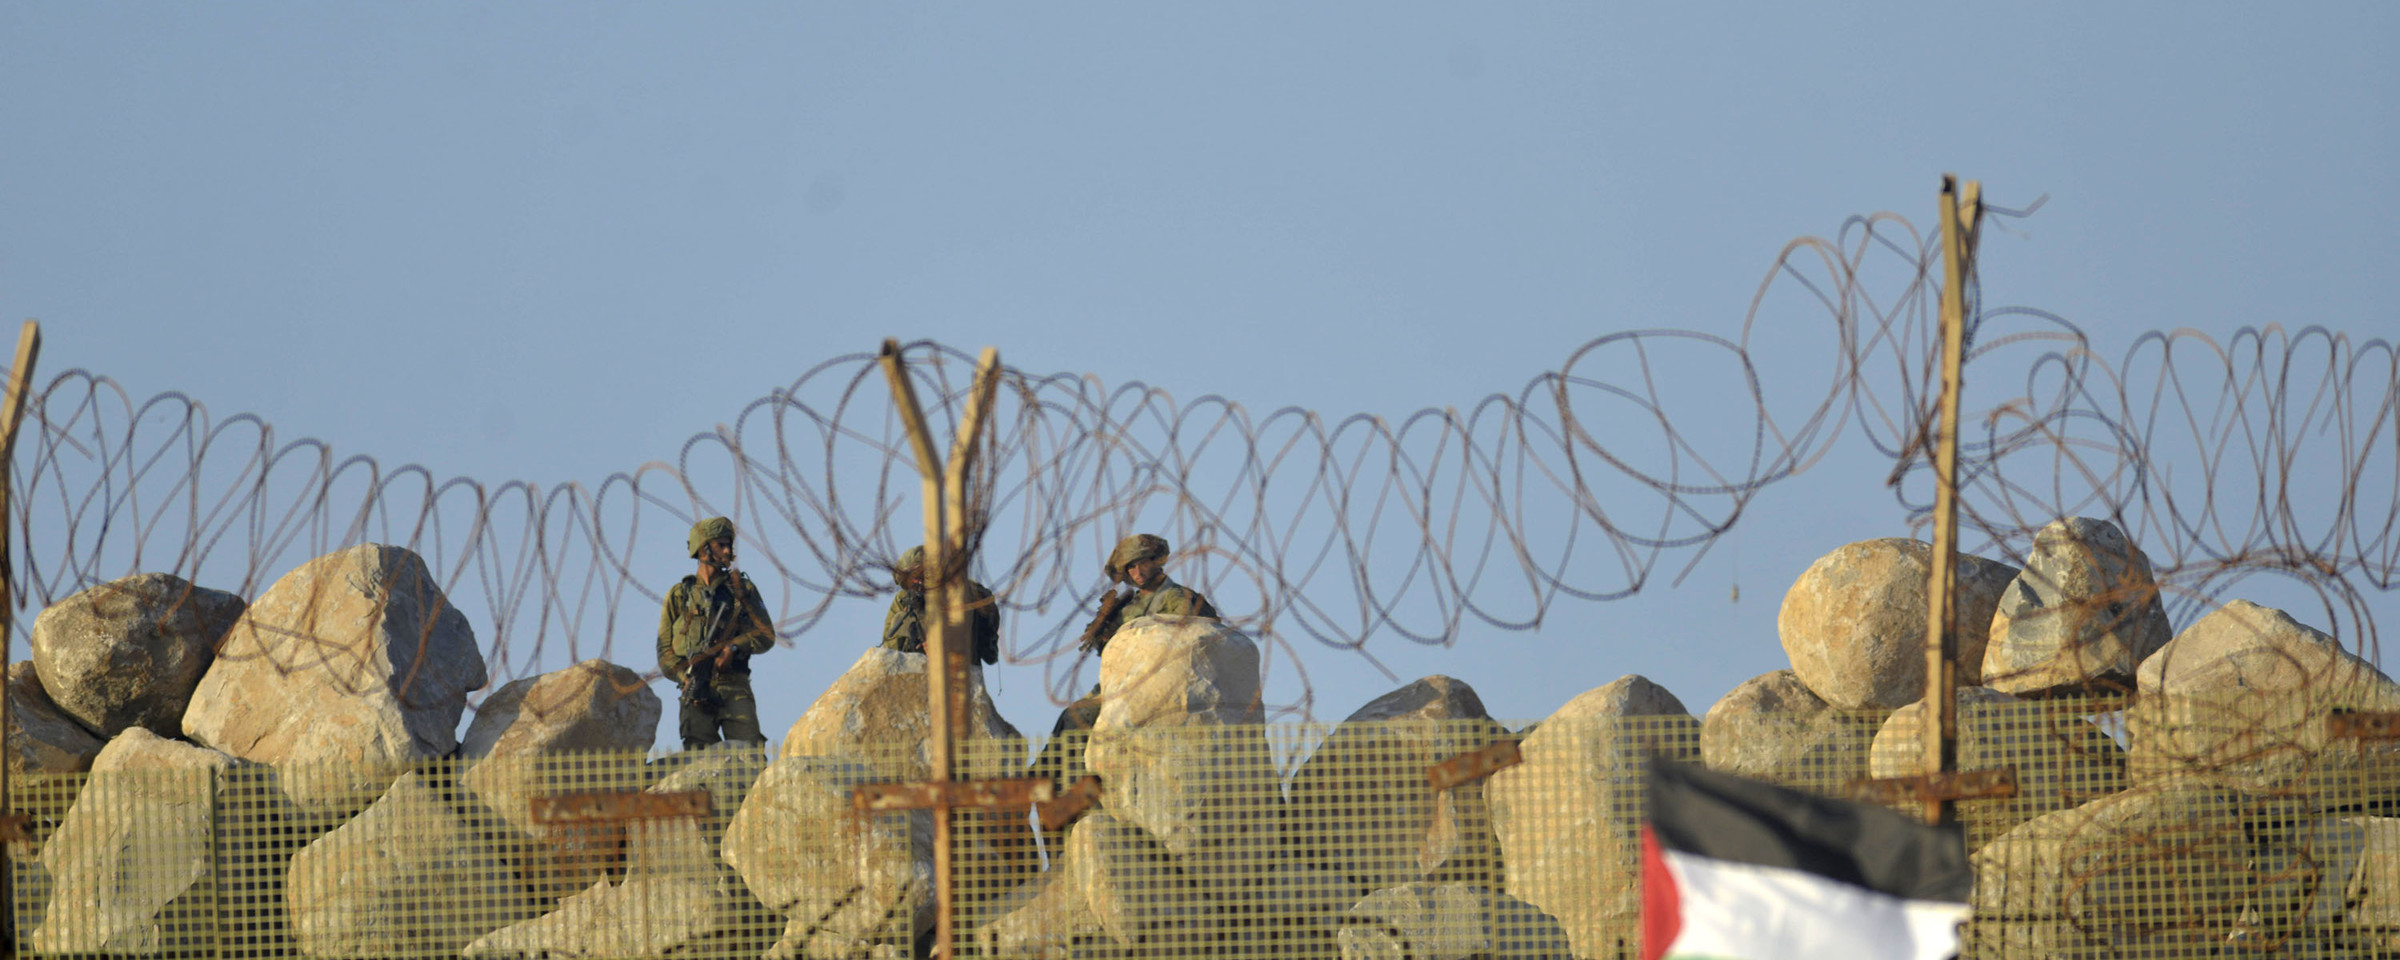 Palestinian protesters stand in front of Israeli soldiers, separated by a barbed wire fence and sandbags